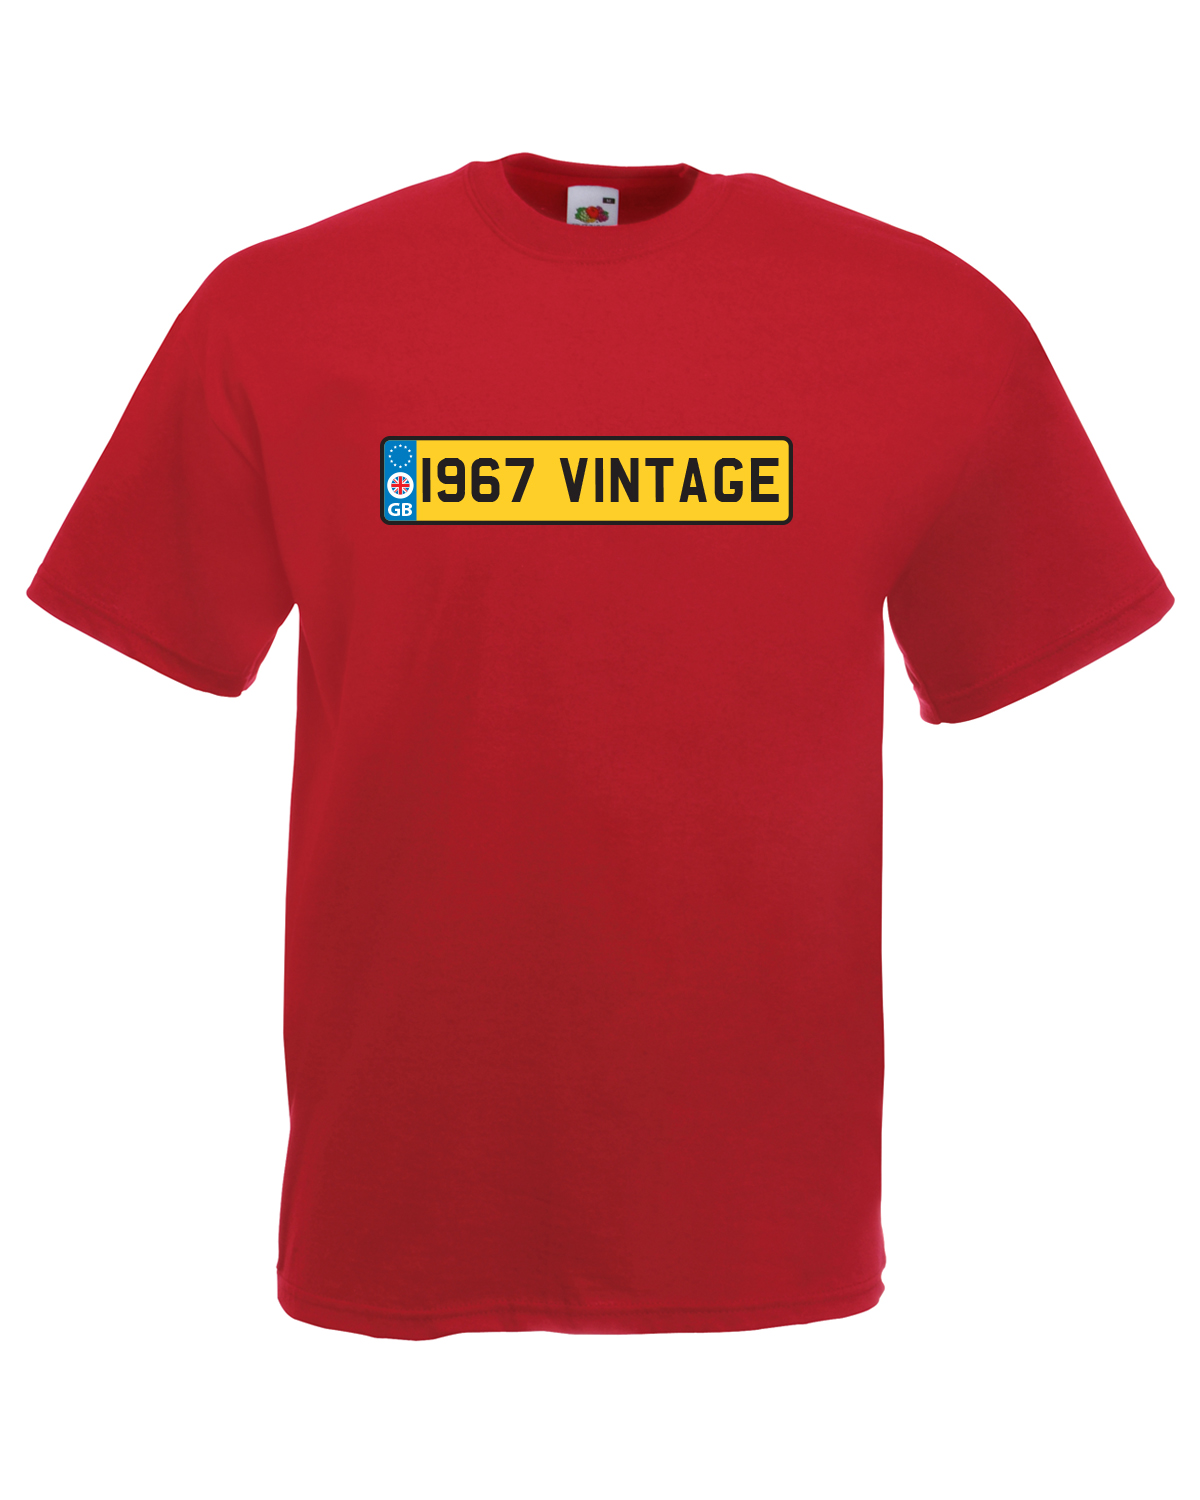 39 i967 vintage 39 number plate car graphic design quality t for Graphic design t shirts uk